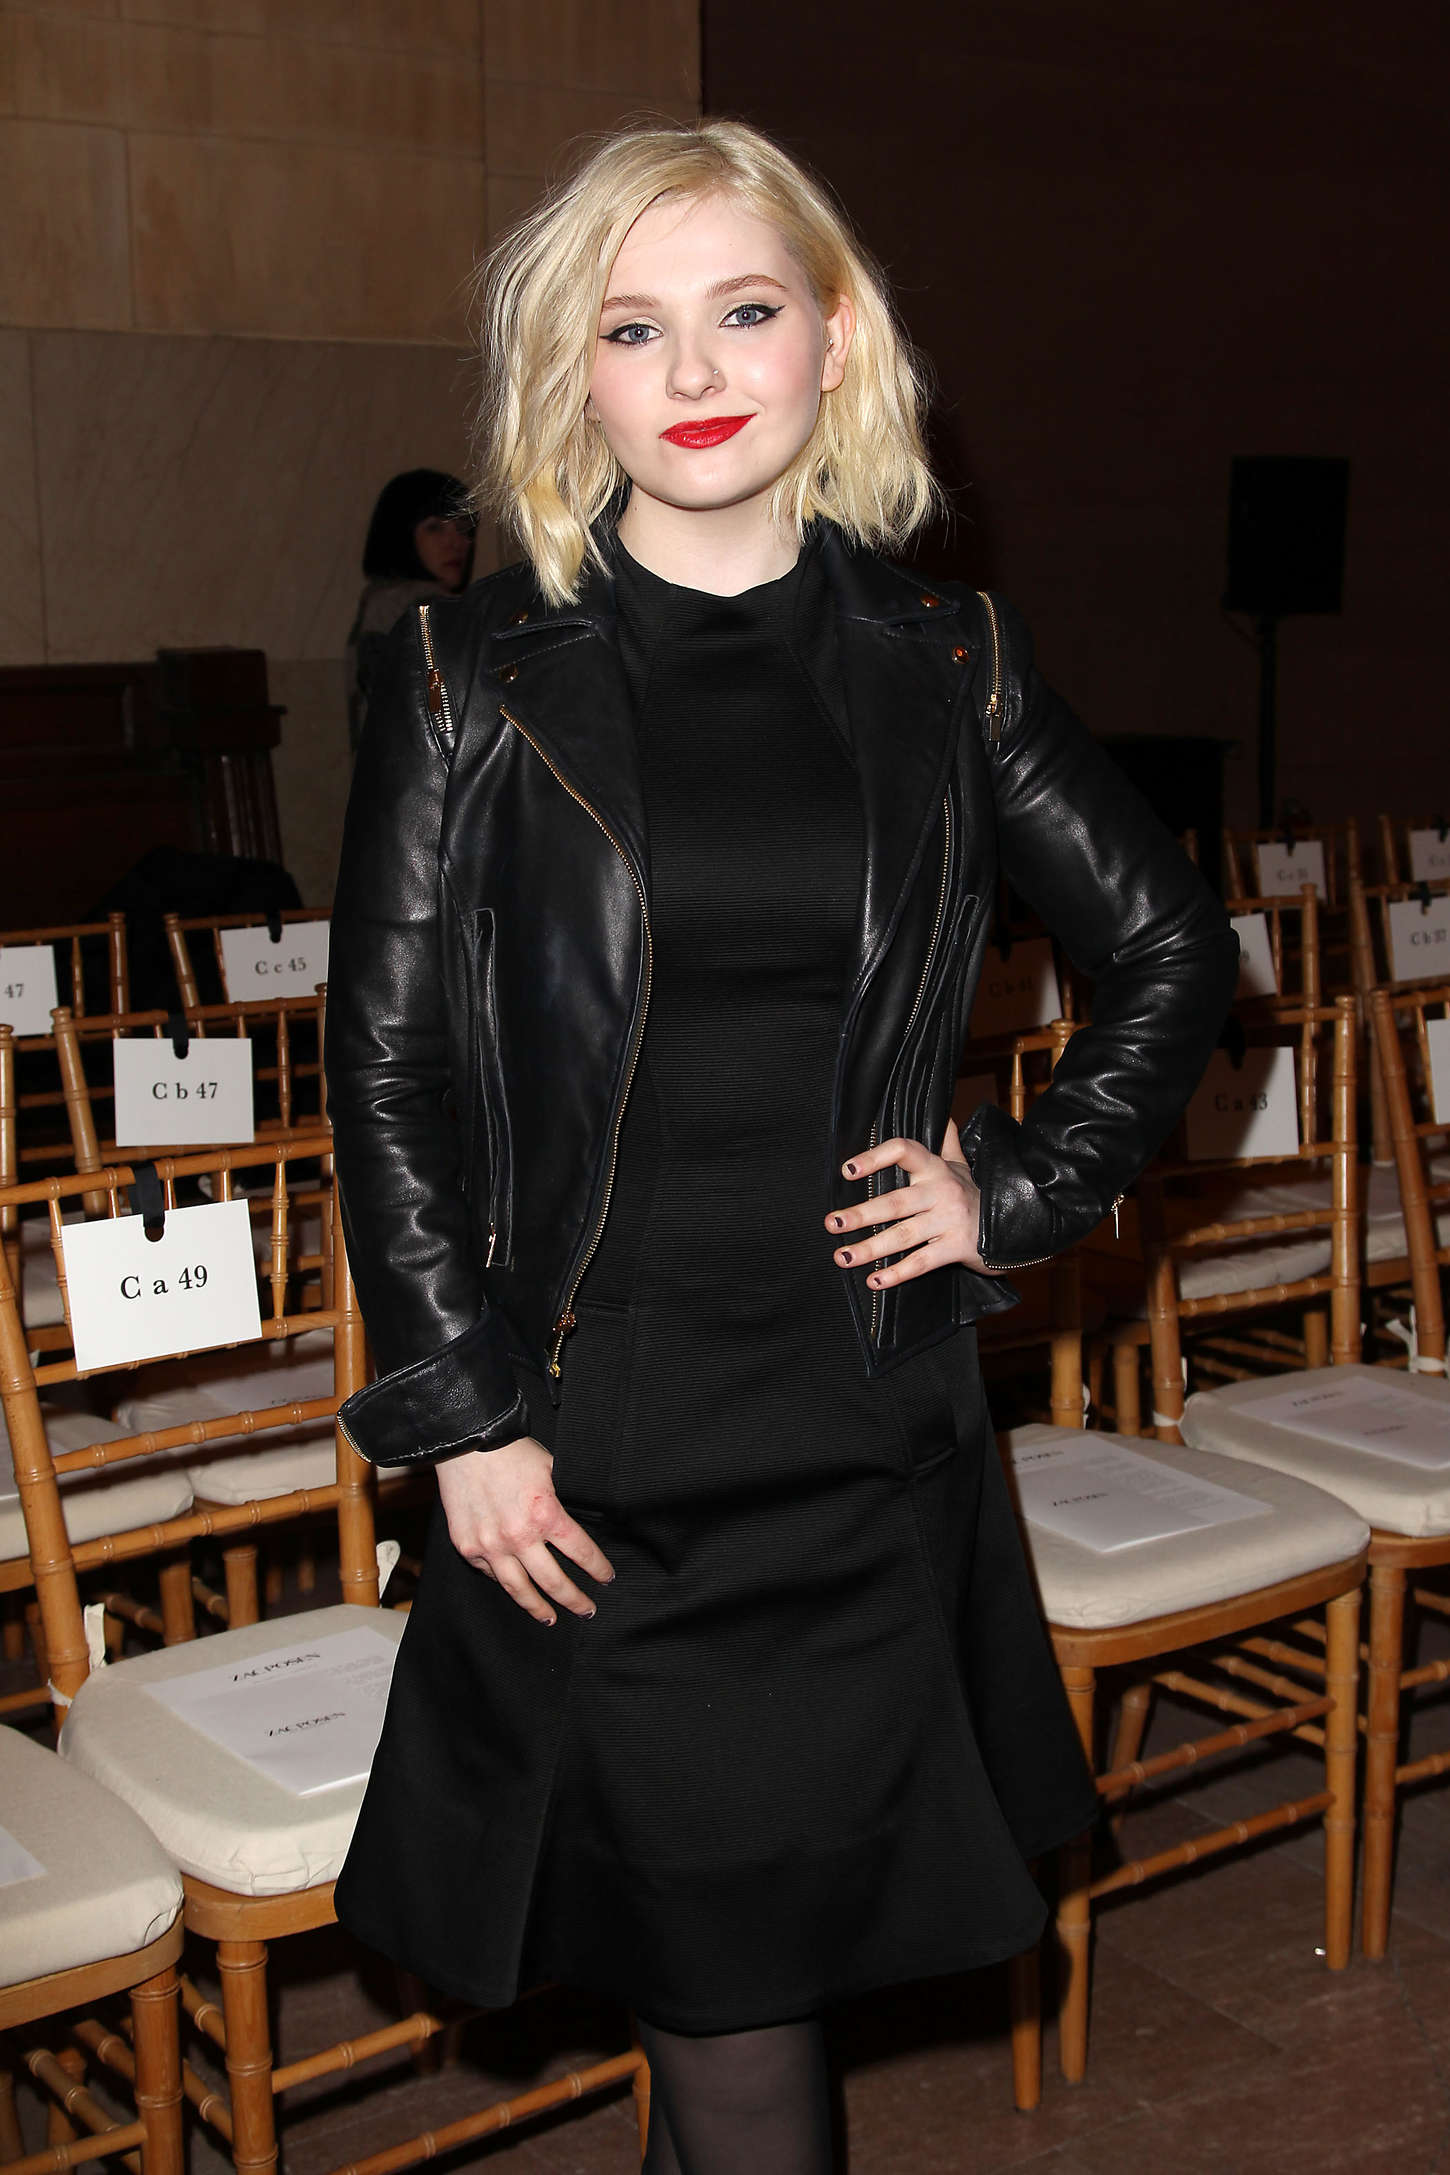 Abigail Breslin Zac Posen Fashion Show in New York